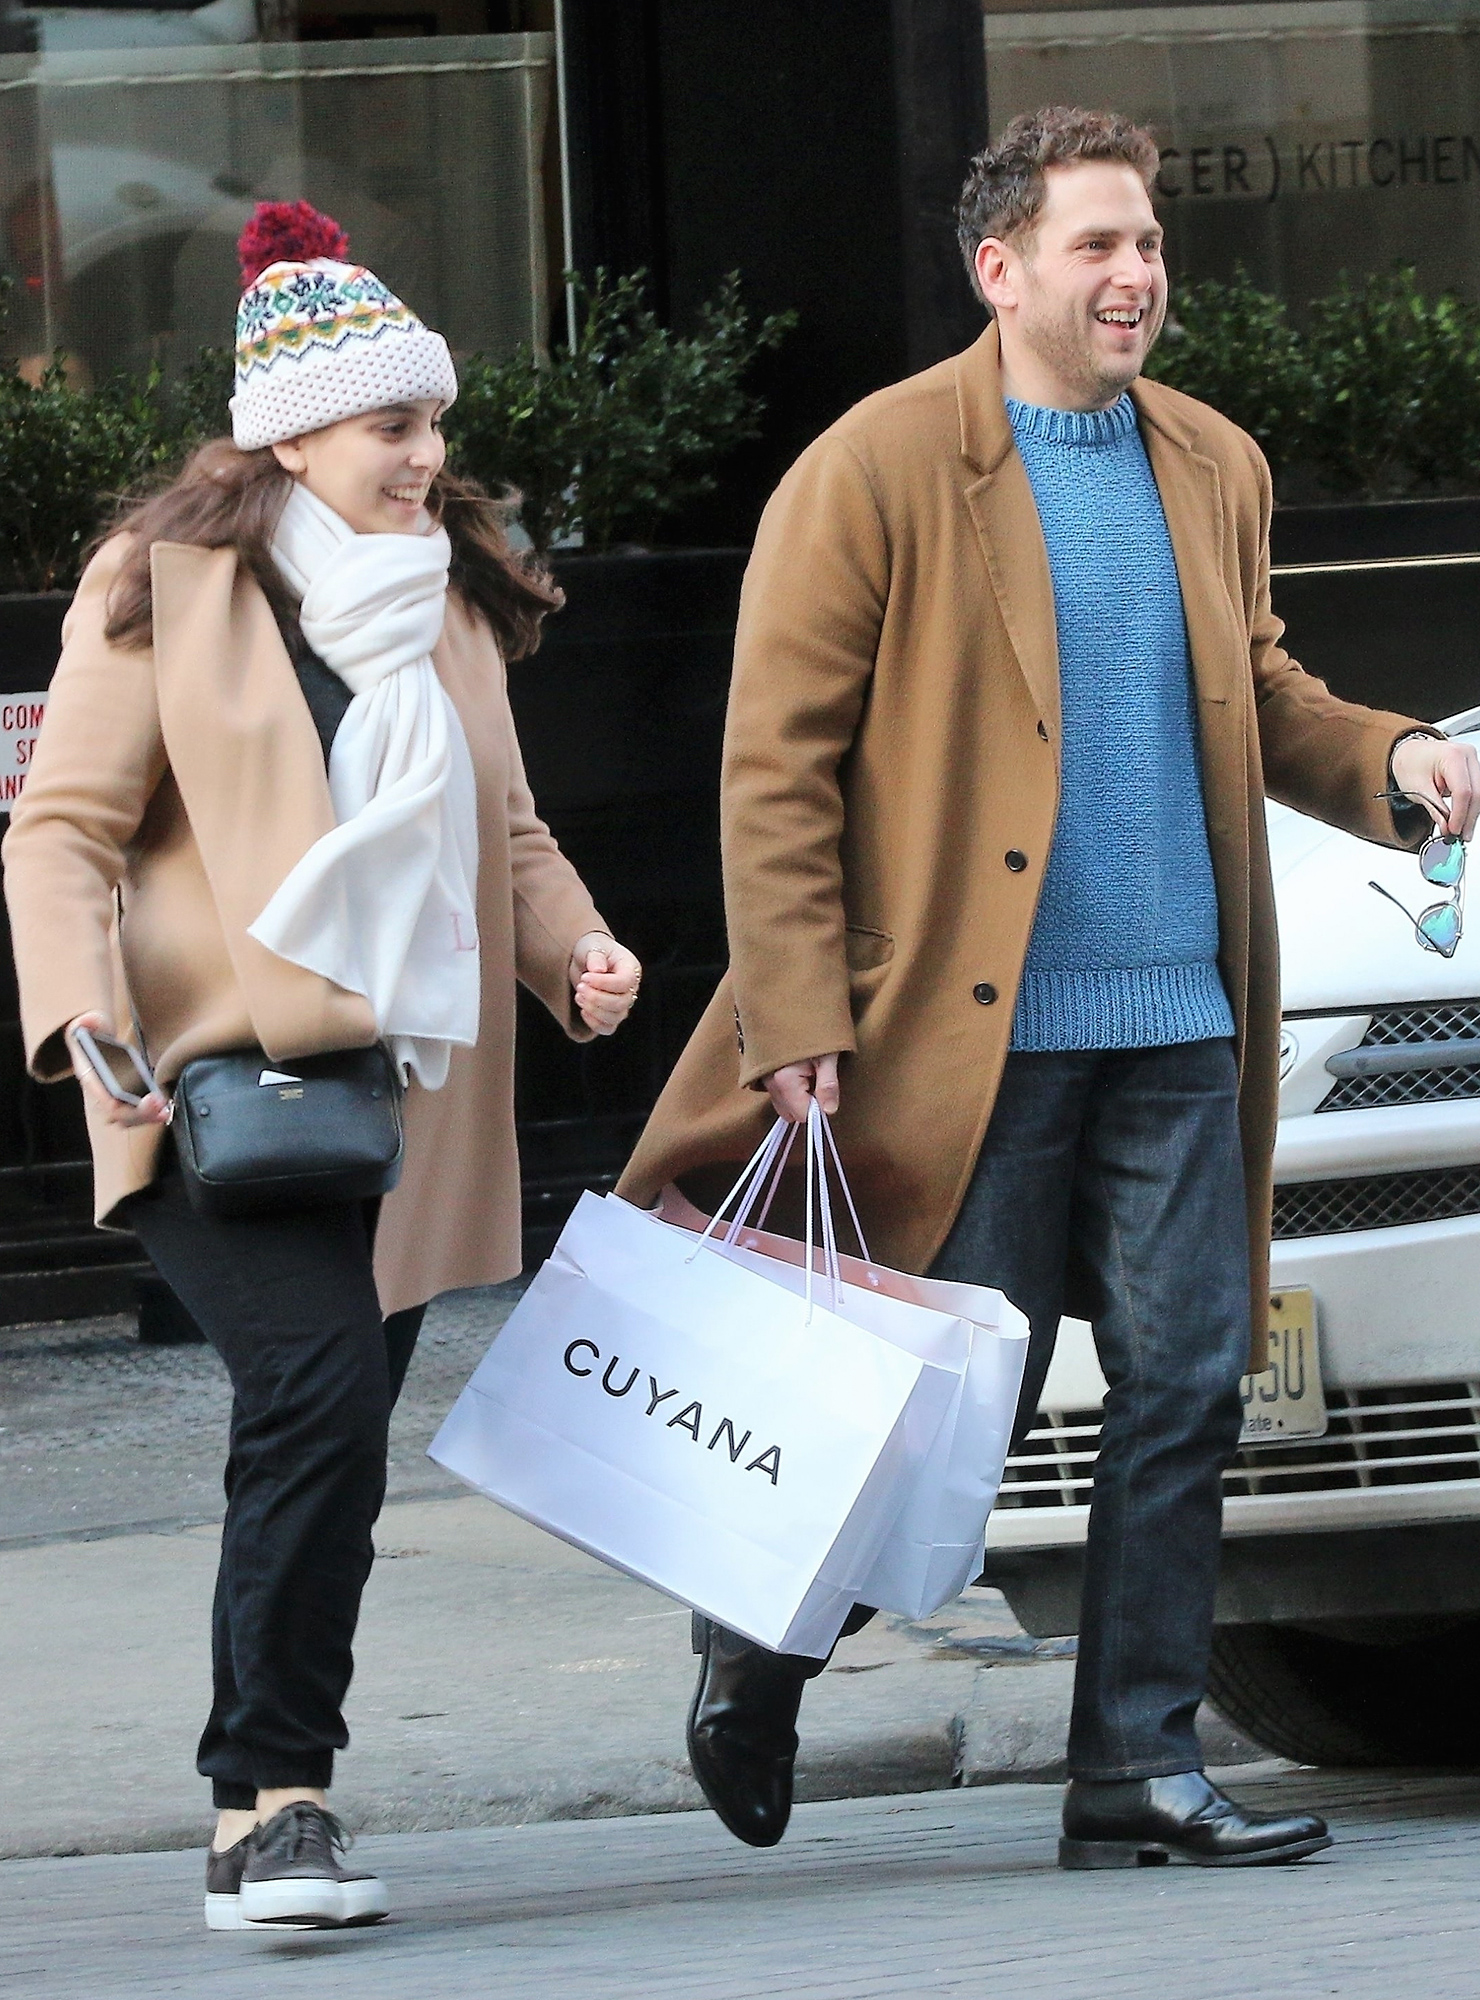 *EXCLUSIVE* Jonah Hill enjoys the day out Christmas shopping with his sister Beanie Feldstein